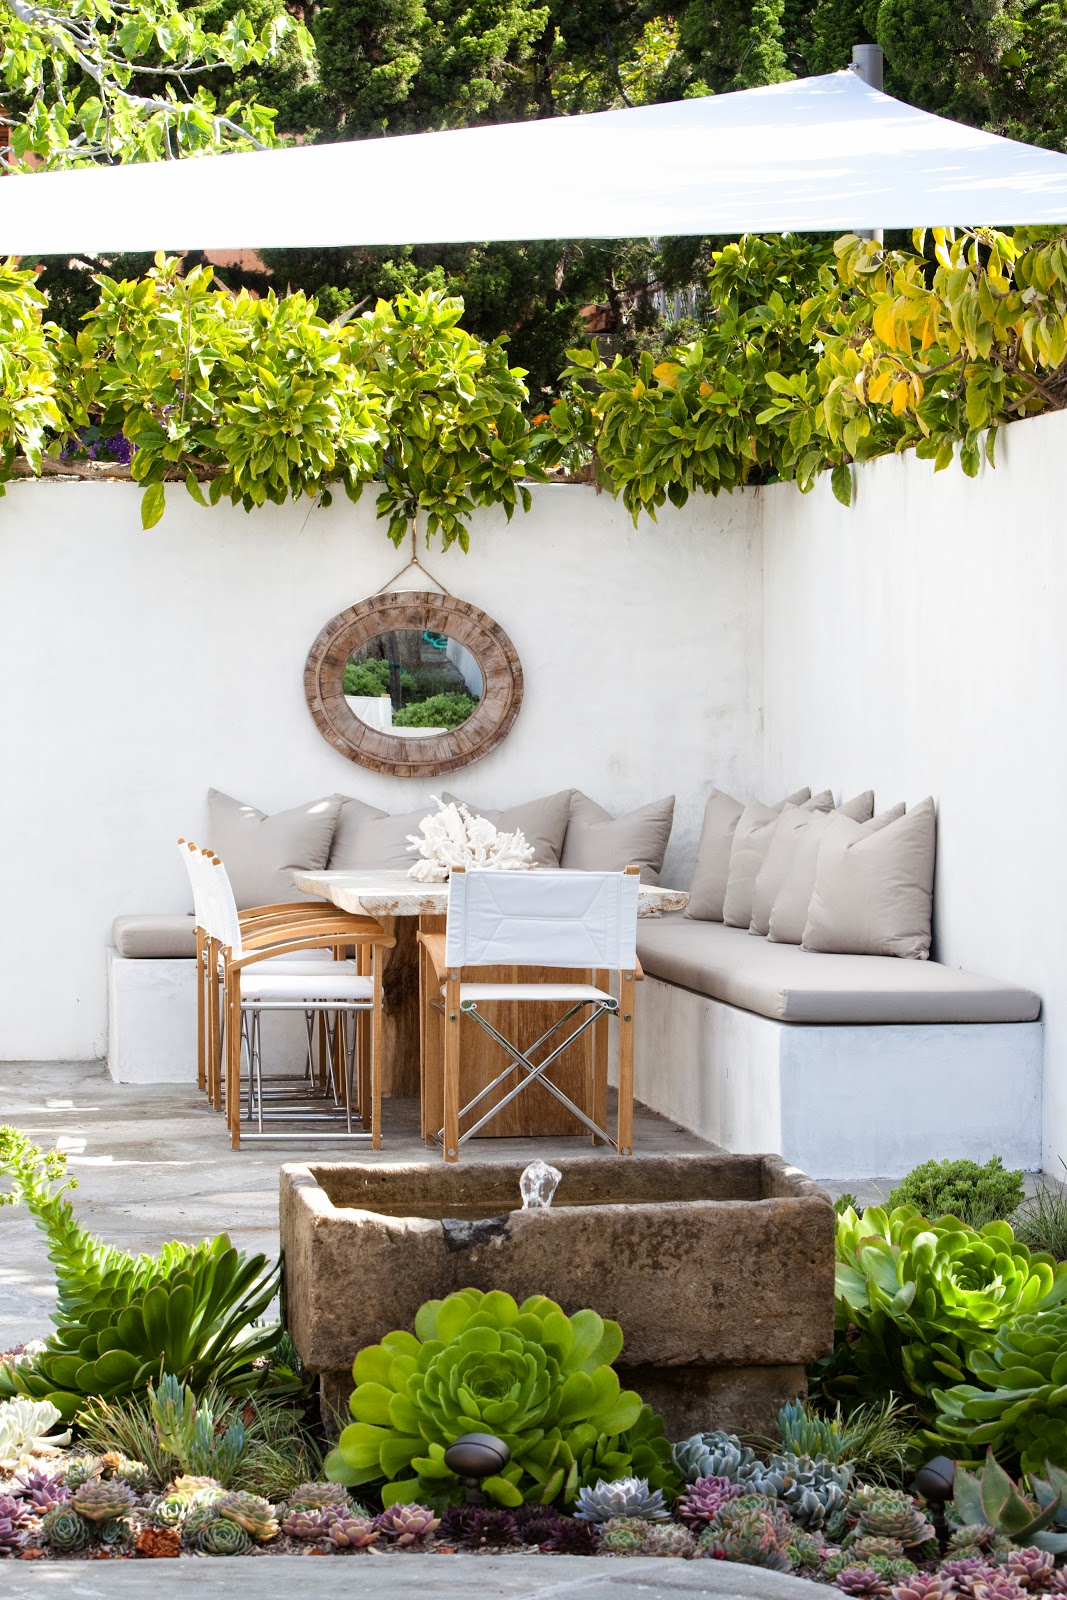 Molly Wood Garden Design we fit this fresh and clean california garden into a narrow l shaped outdoor space the grilling and fountain area are off the kitchen Ciao Fabiana